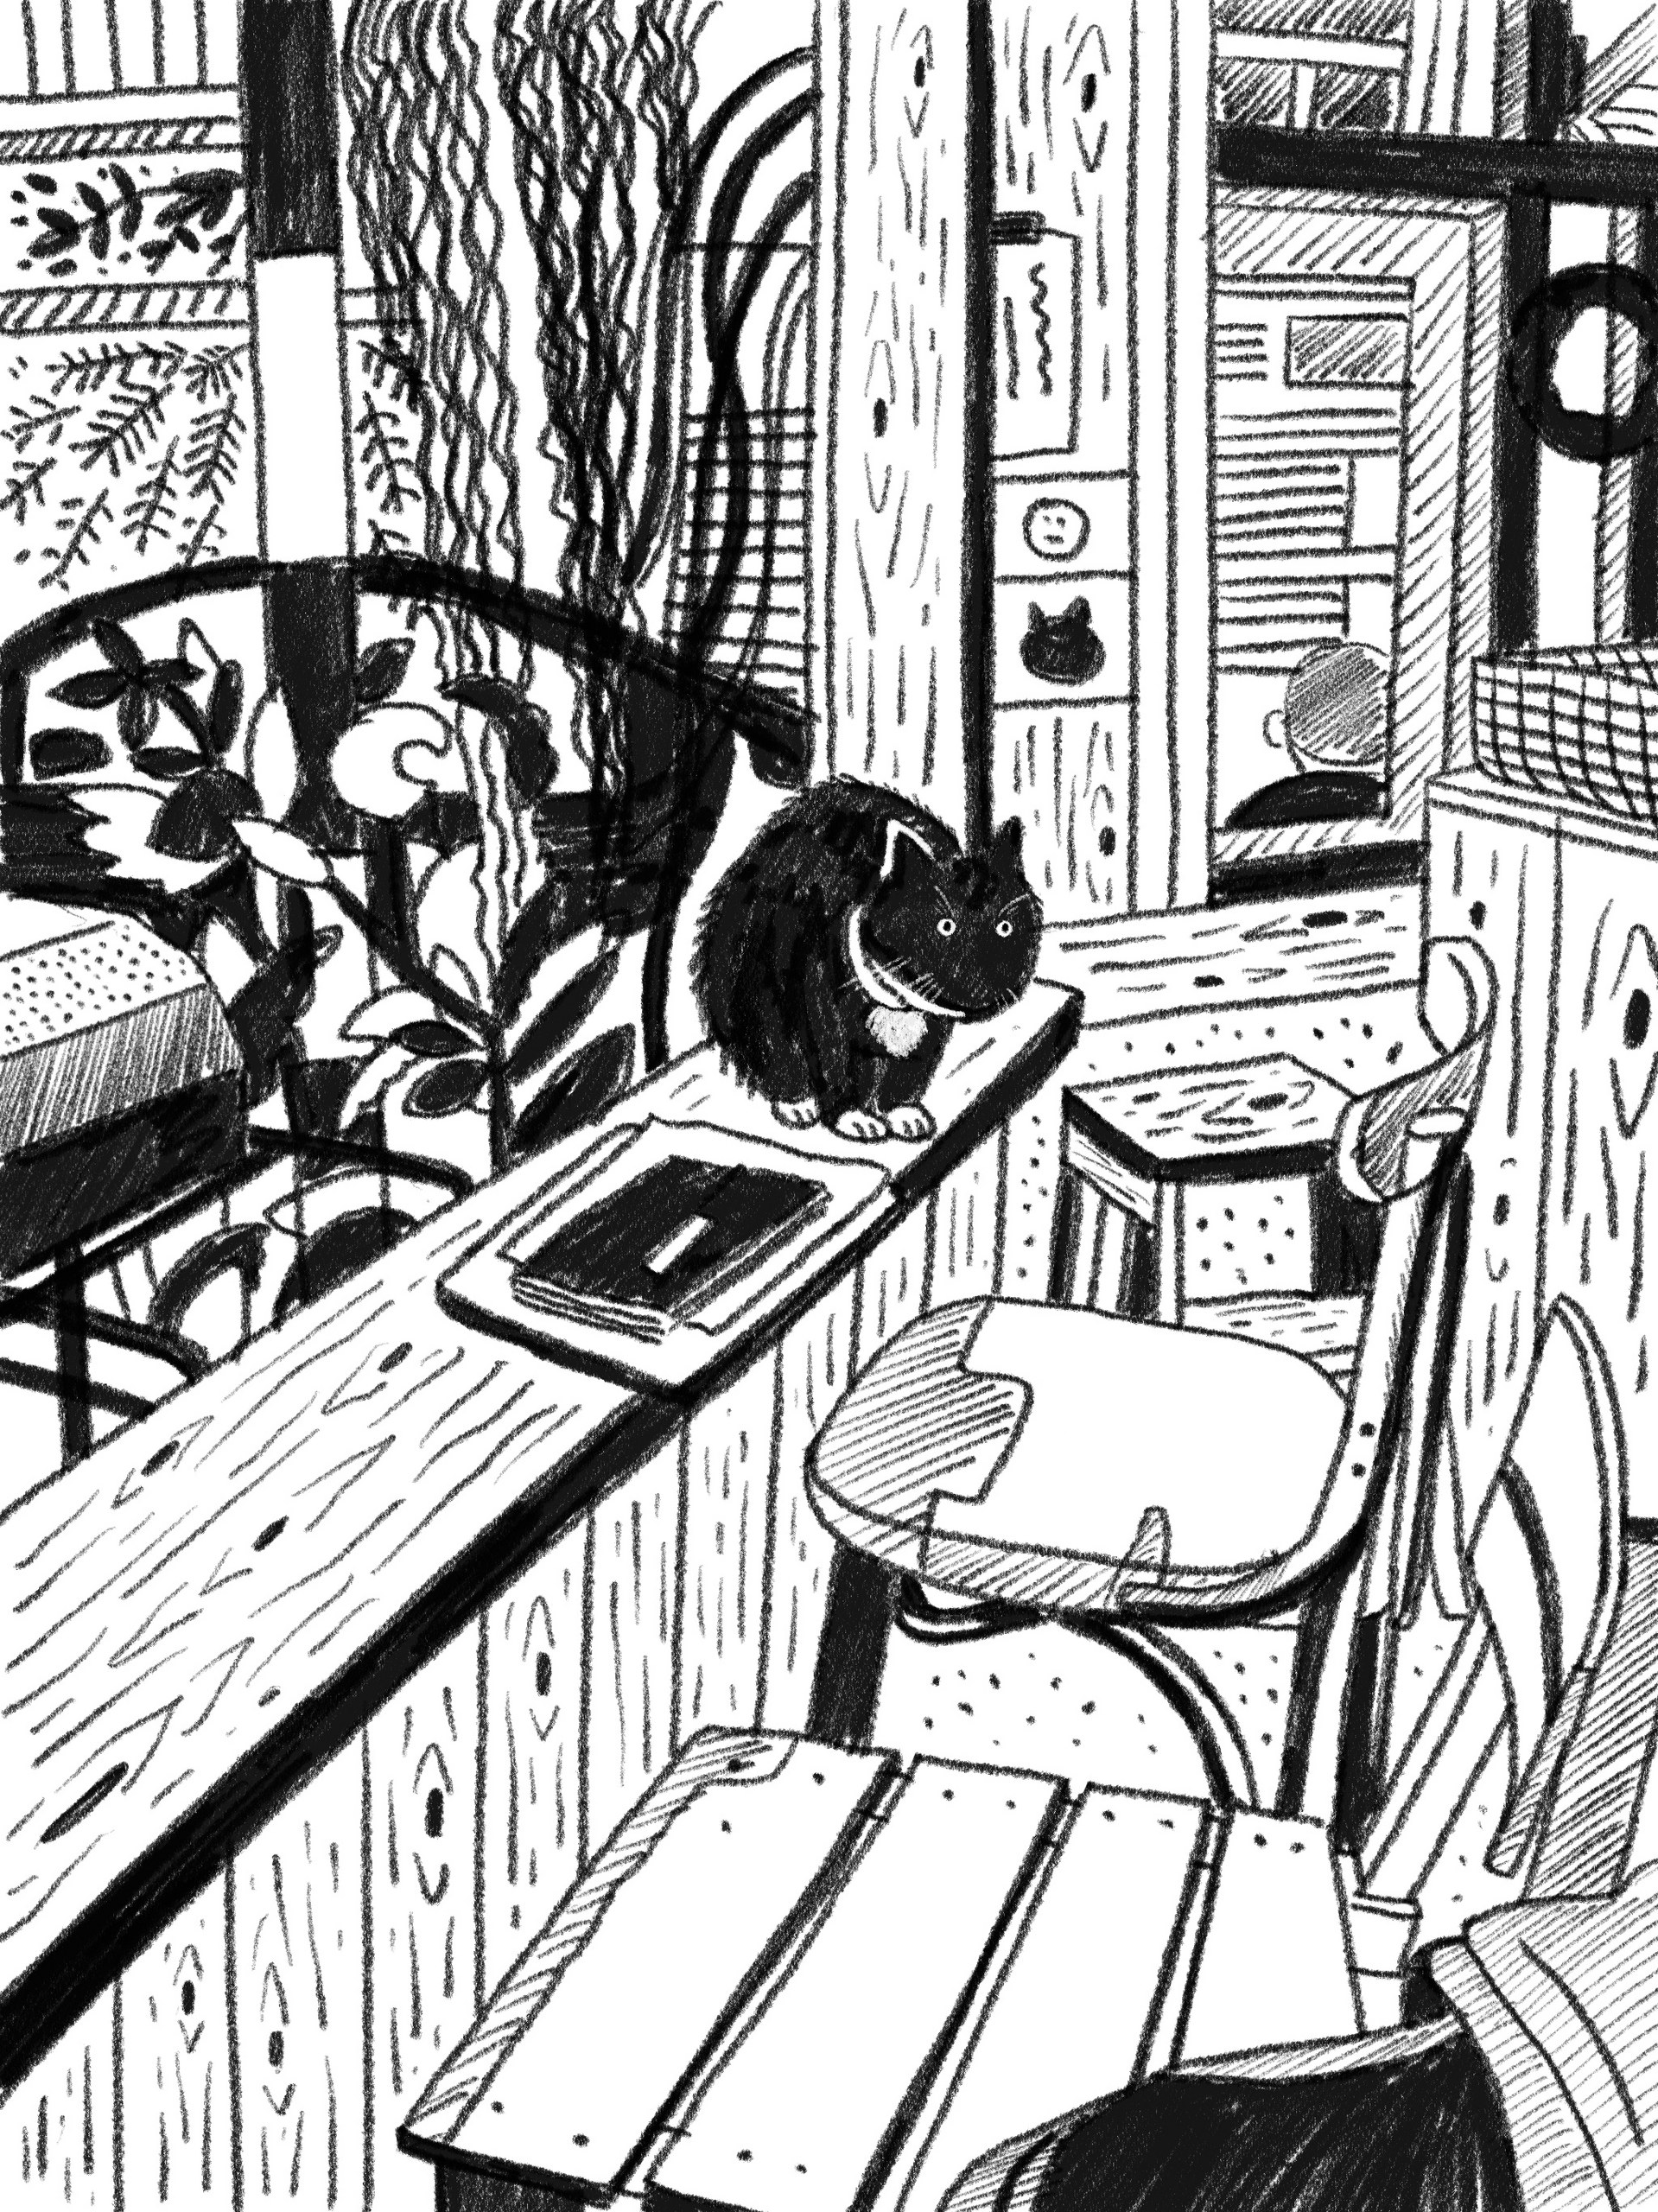 A black cat in the cafe